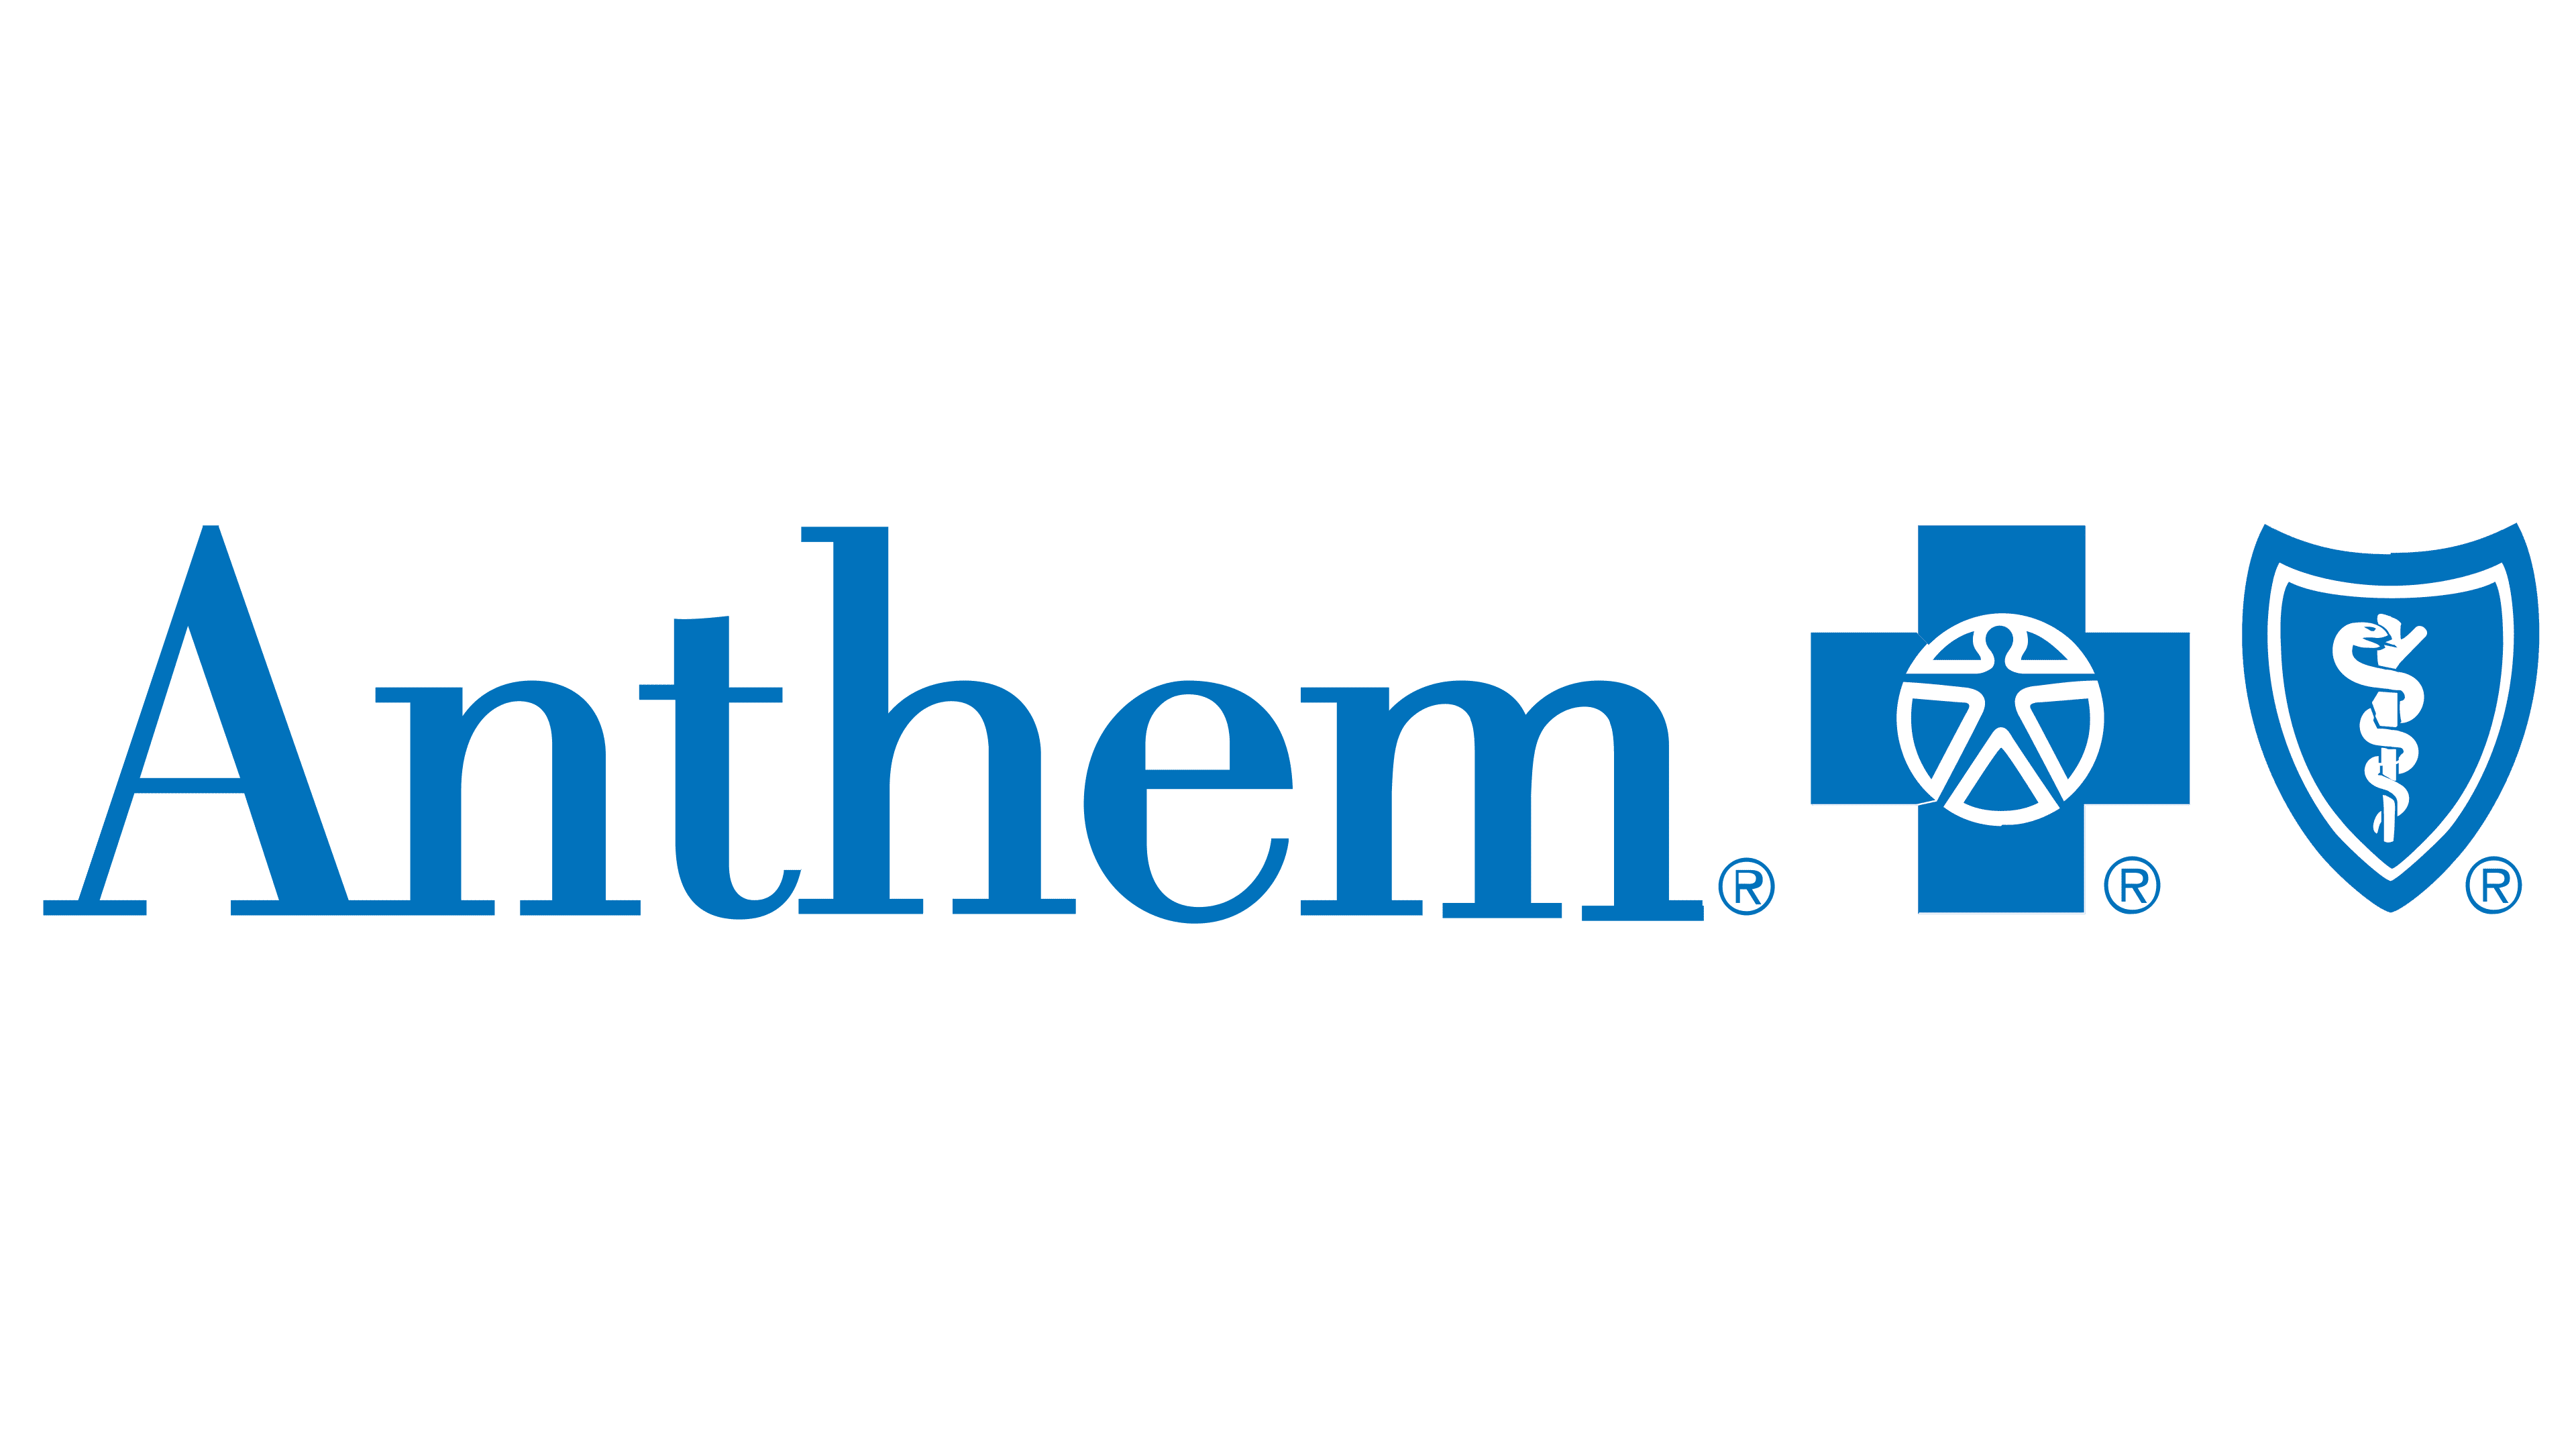 Anthem Inc. Logo